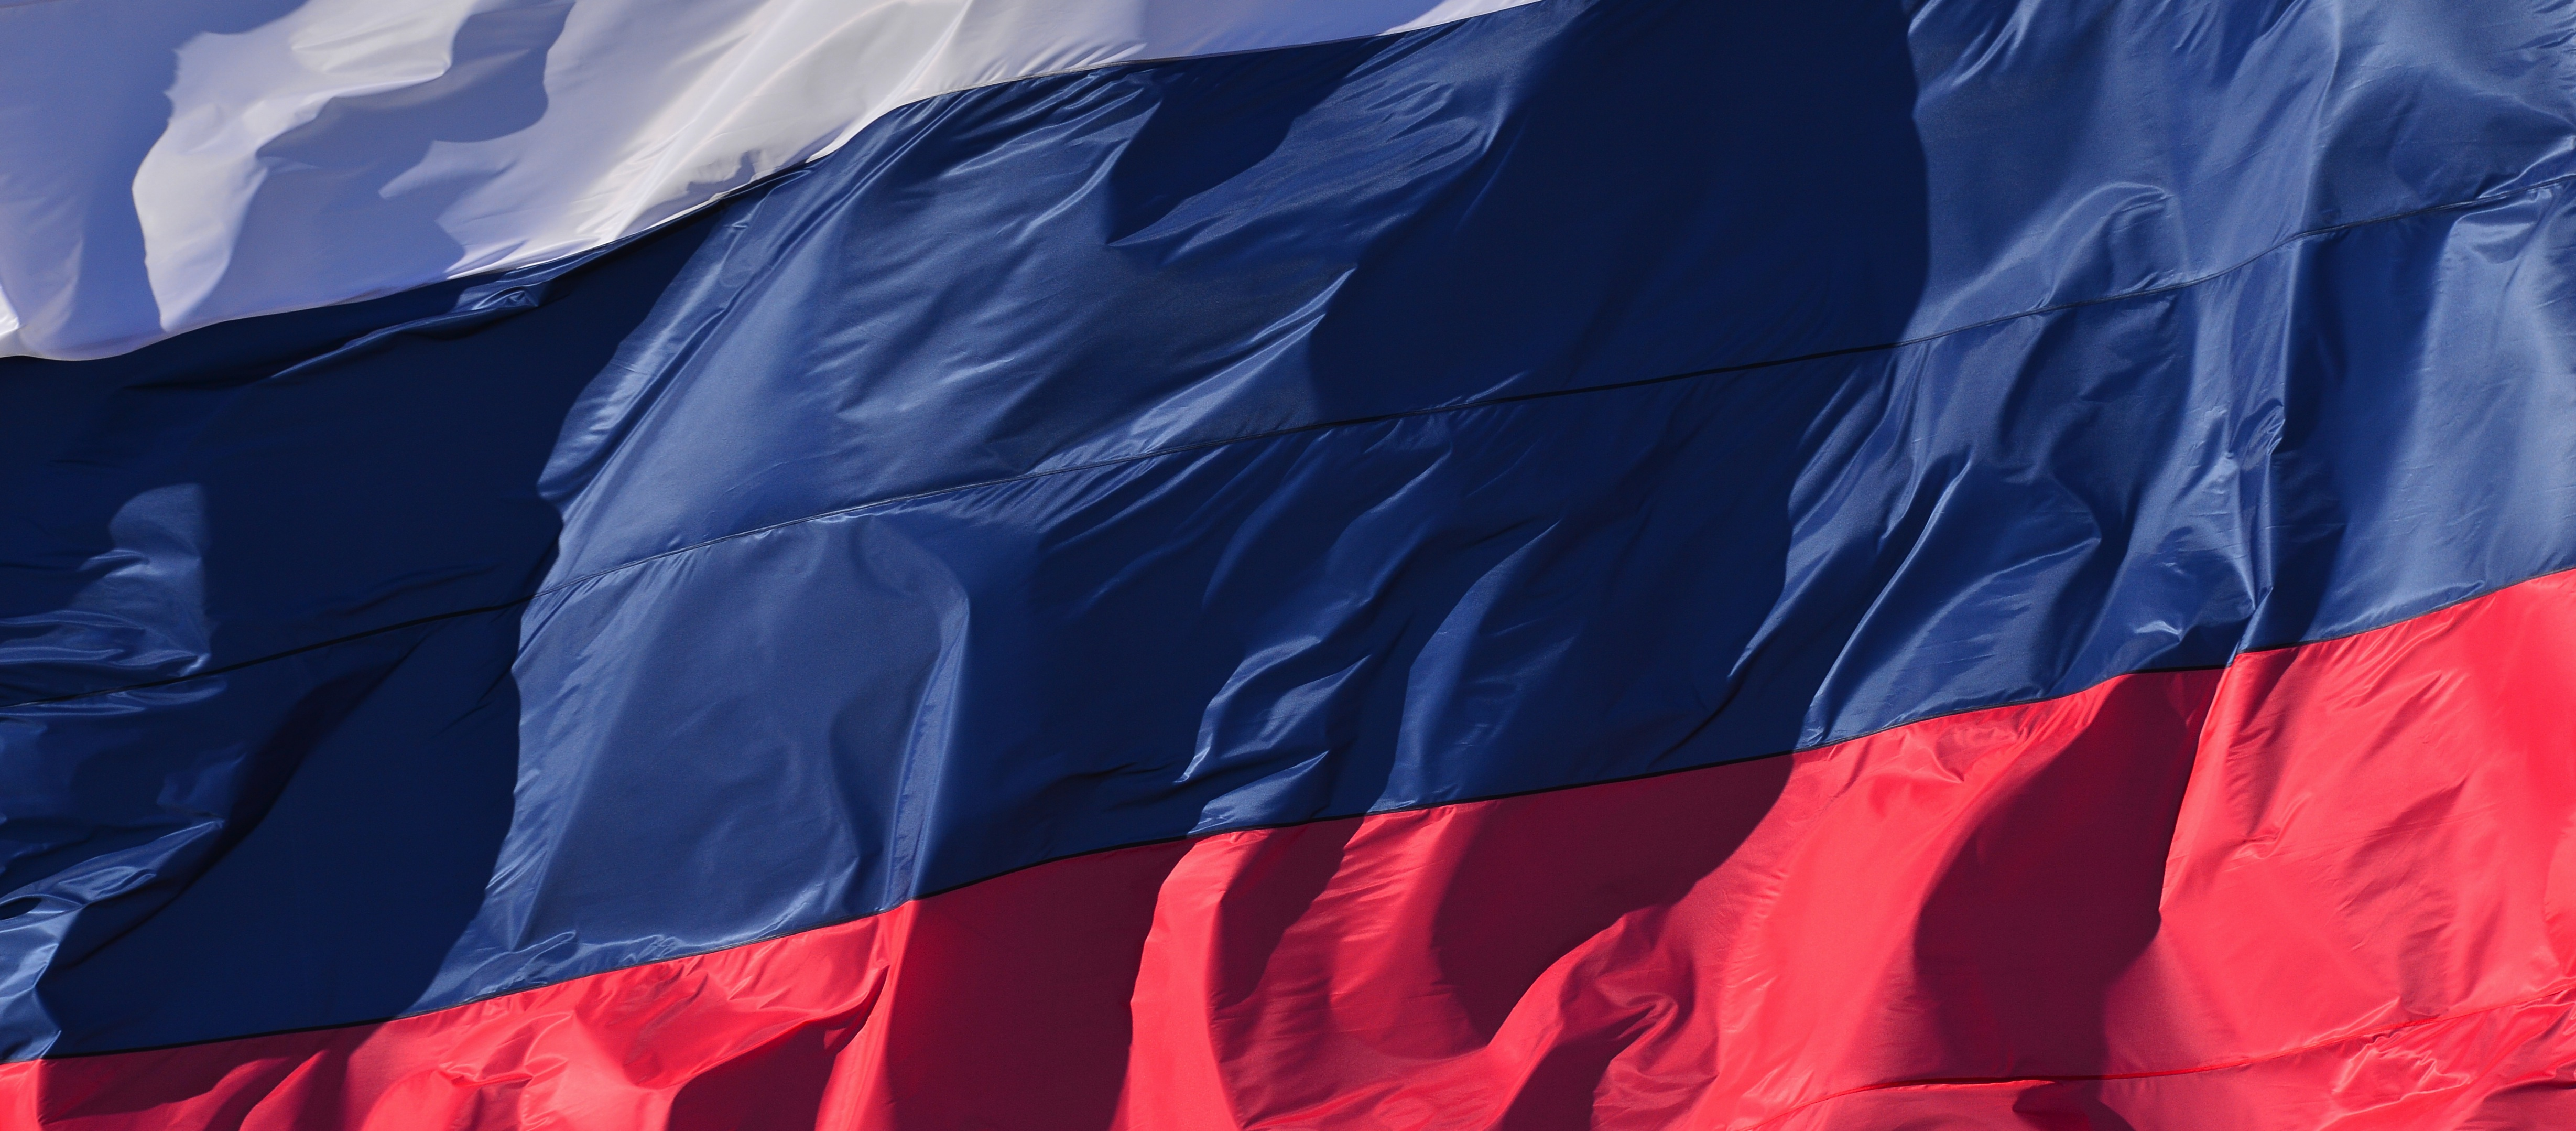 What You Need to Know About Russia's Tech Scene